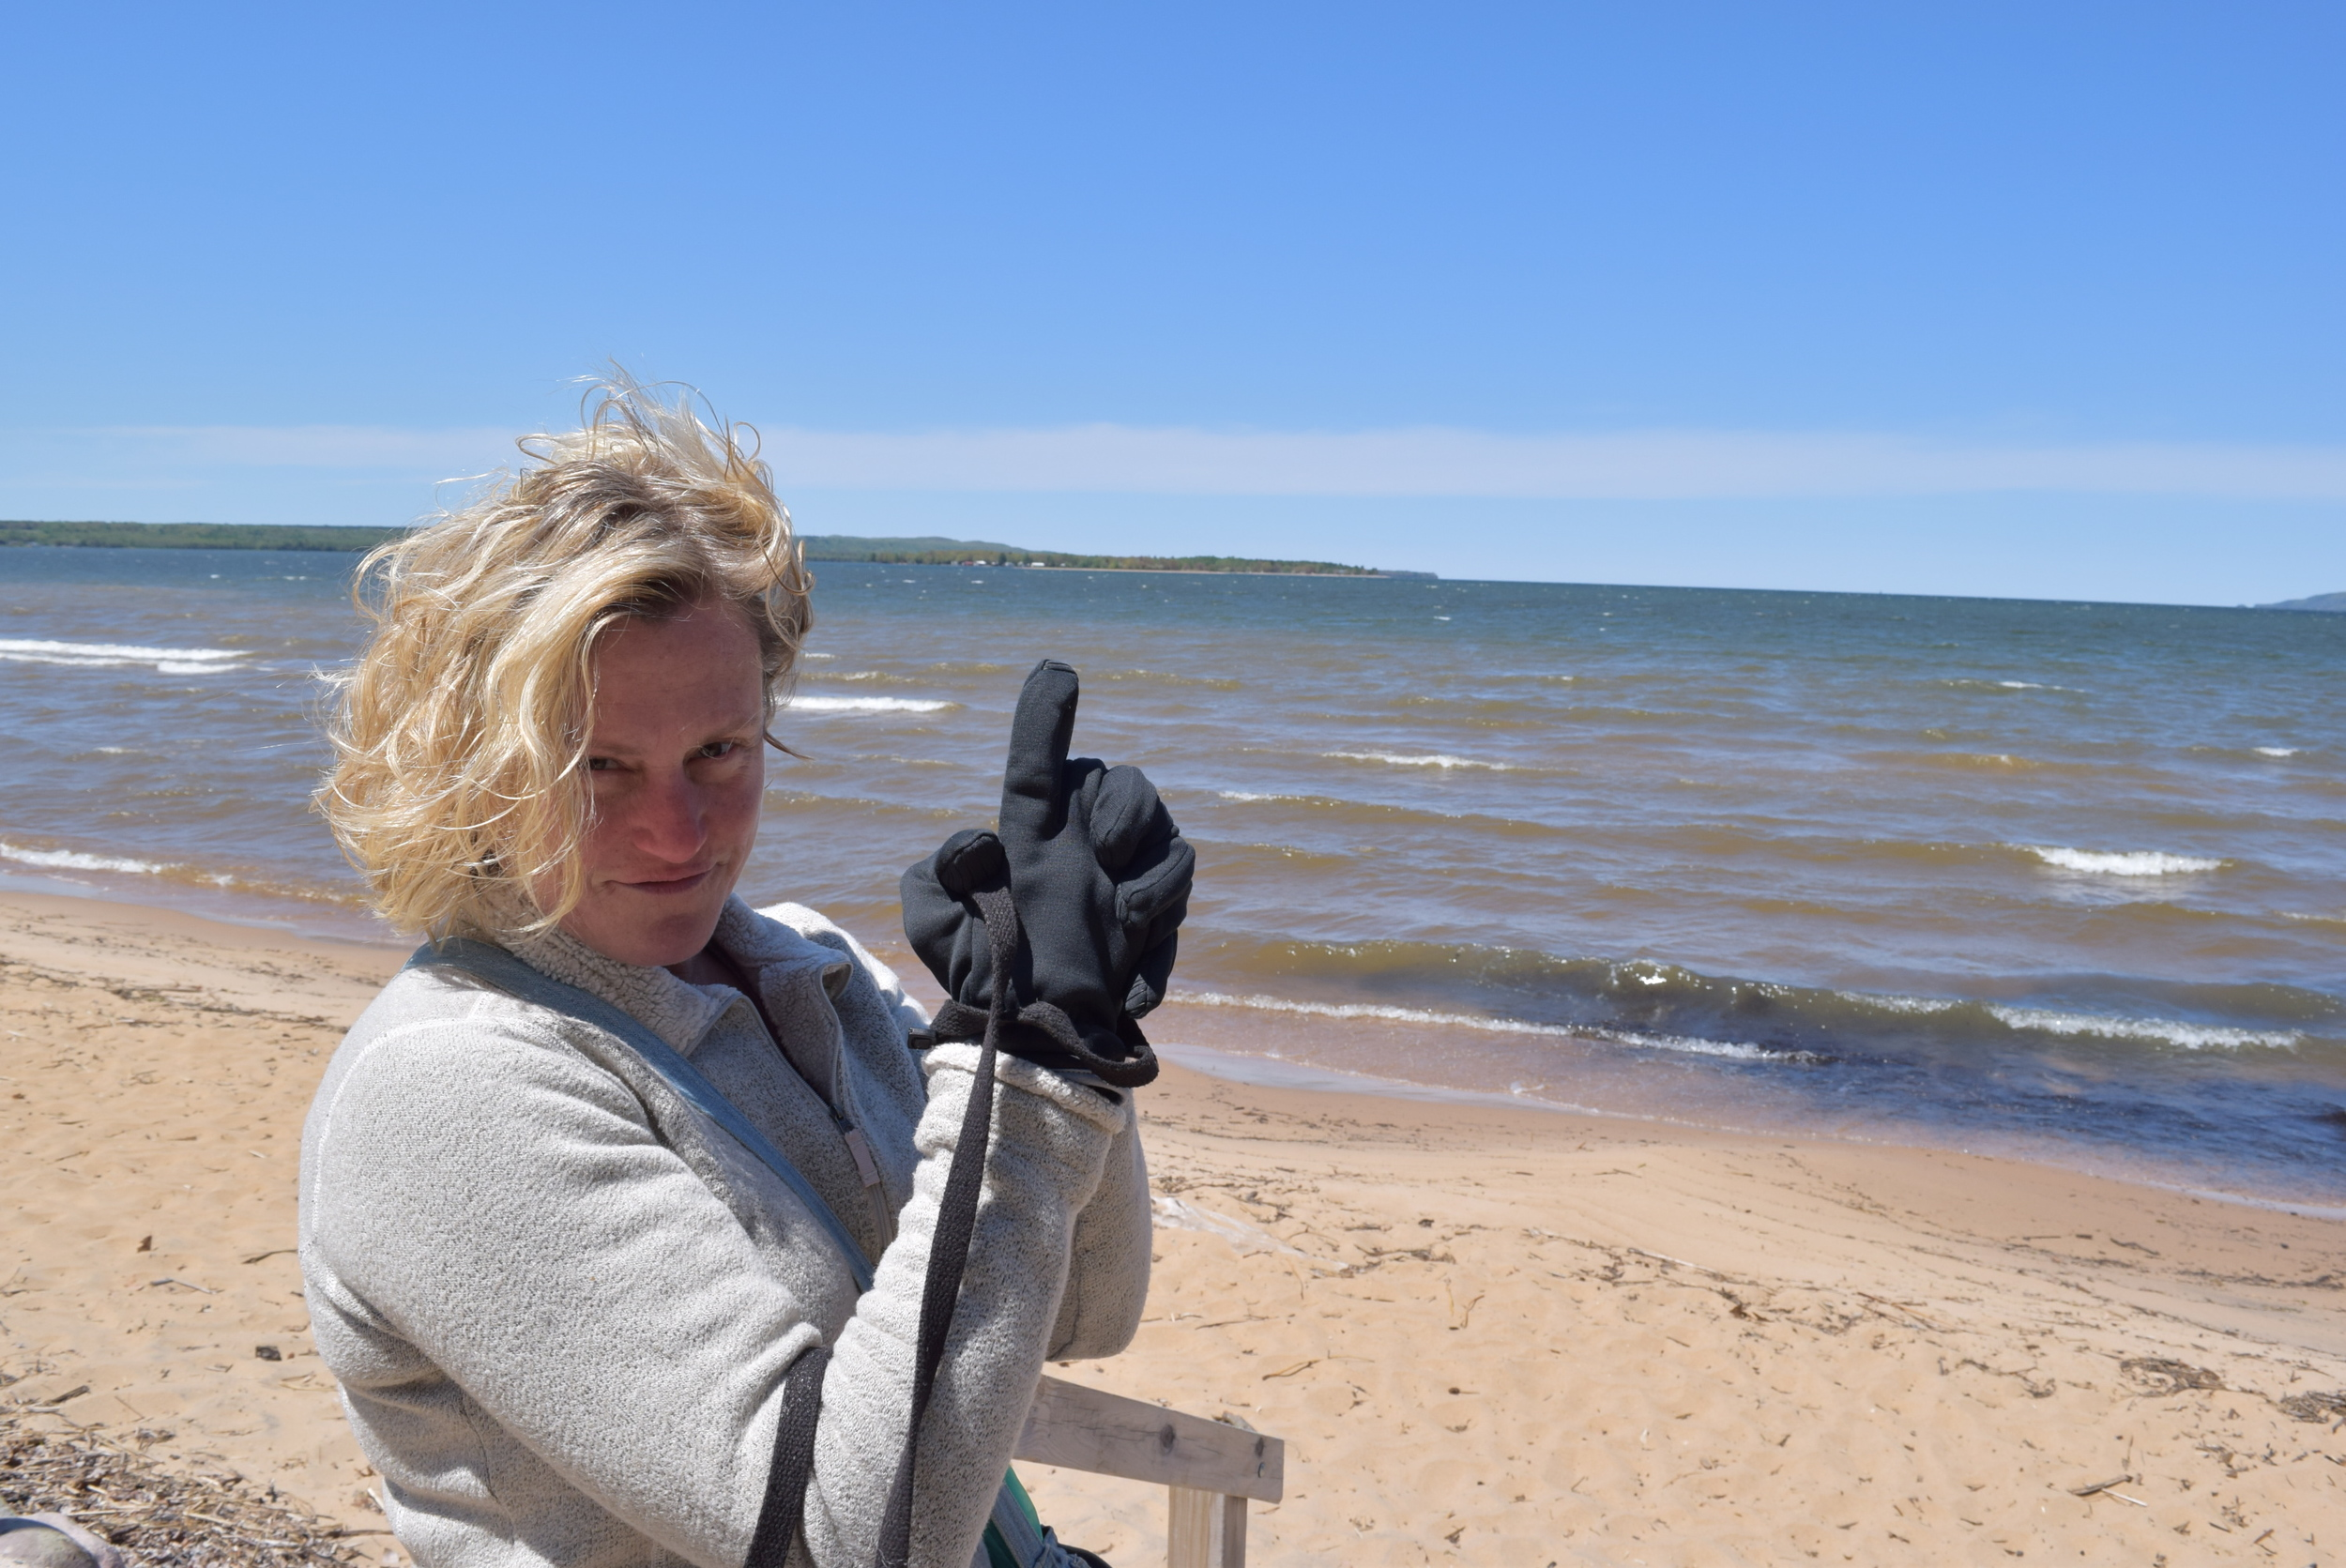 That's Canada across the water. Not for this girl who packs heat!